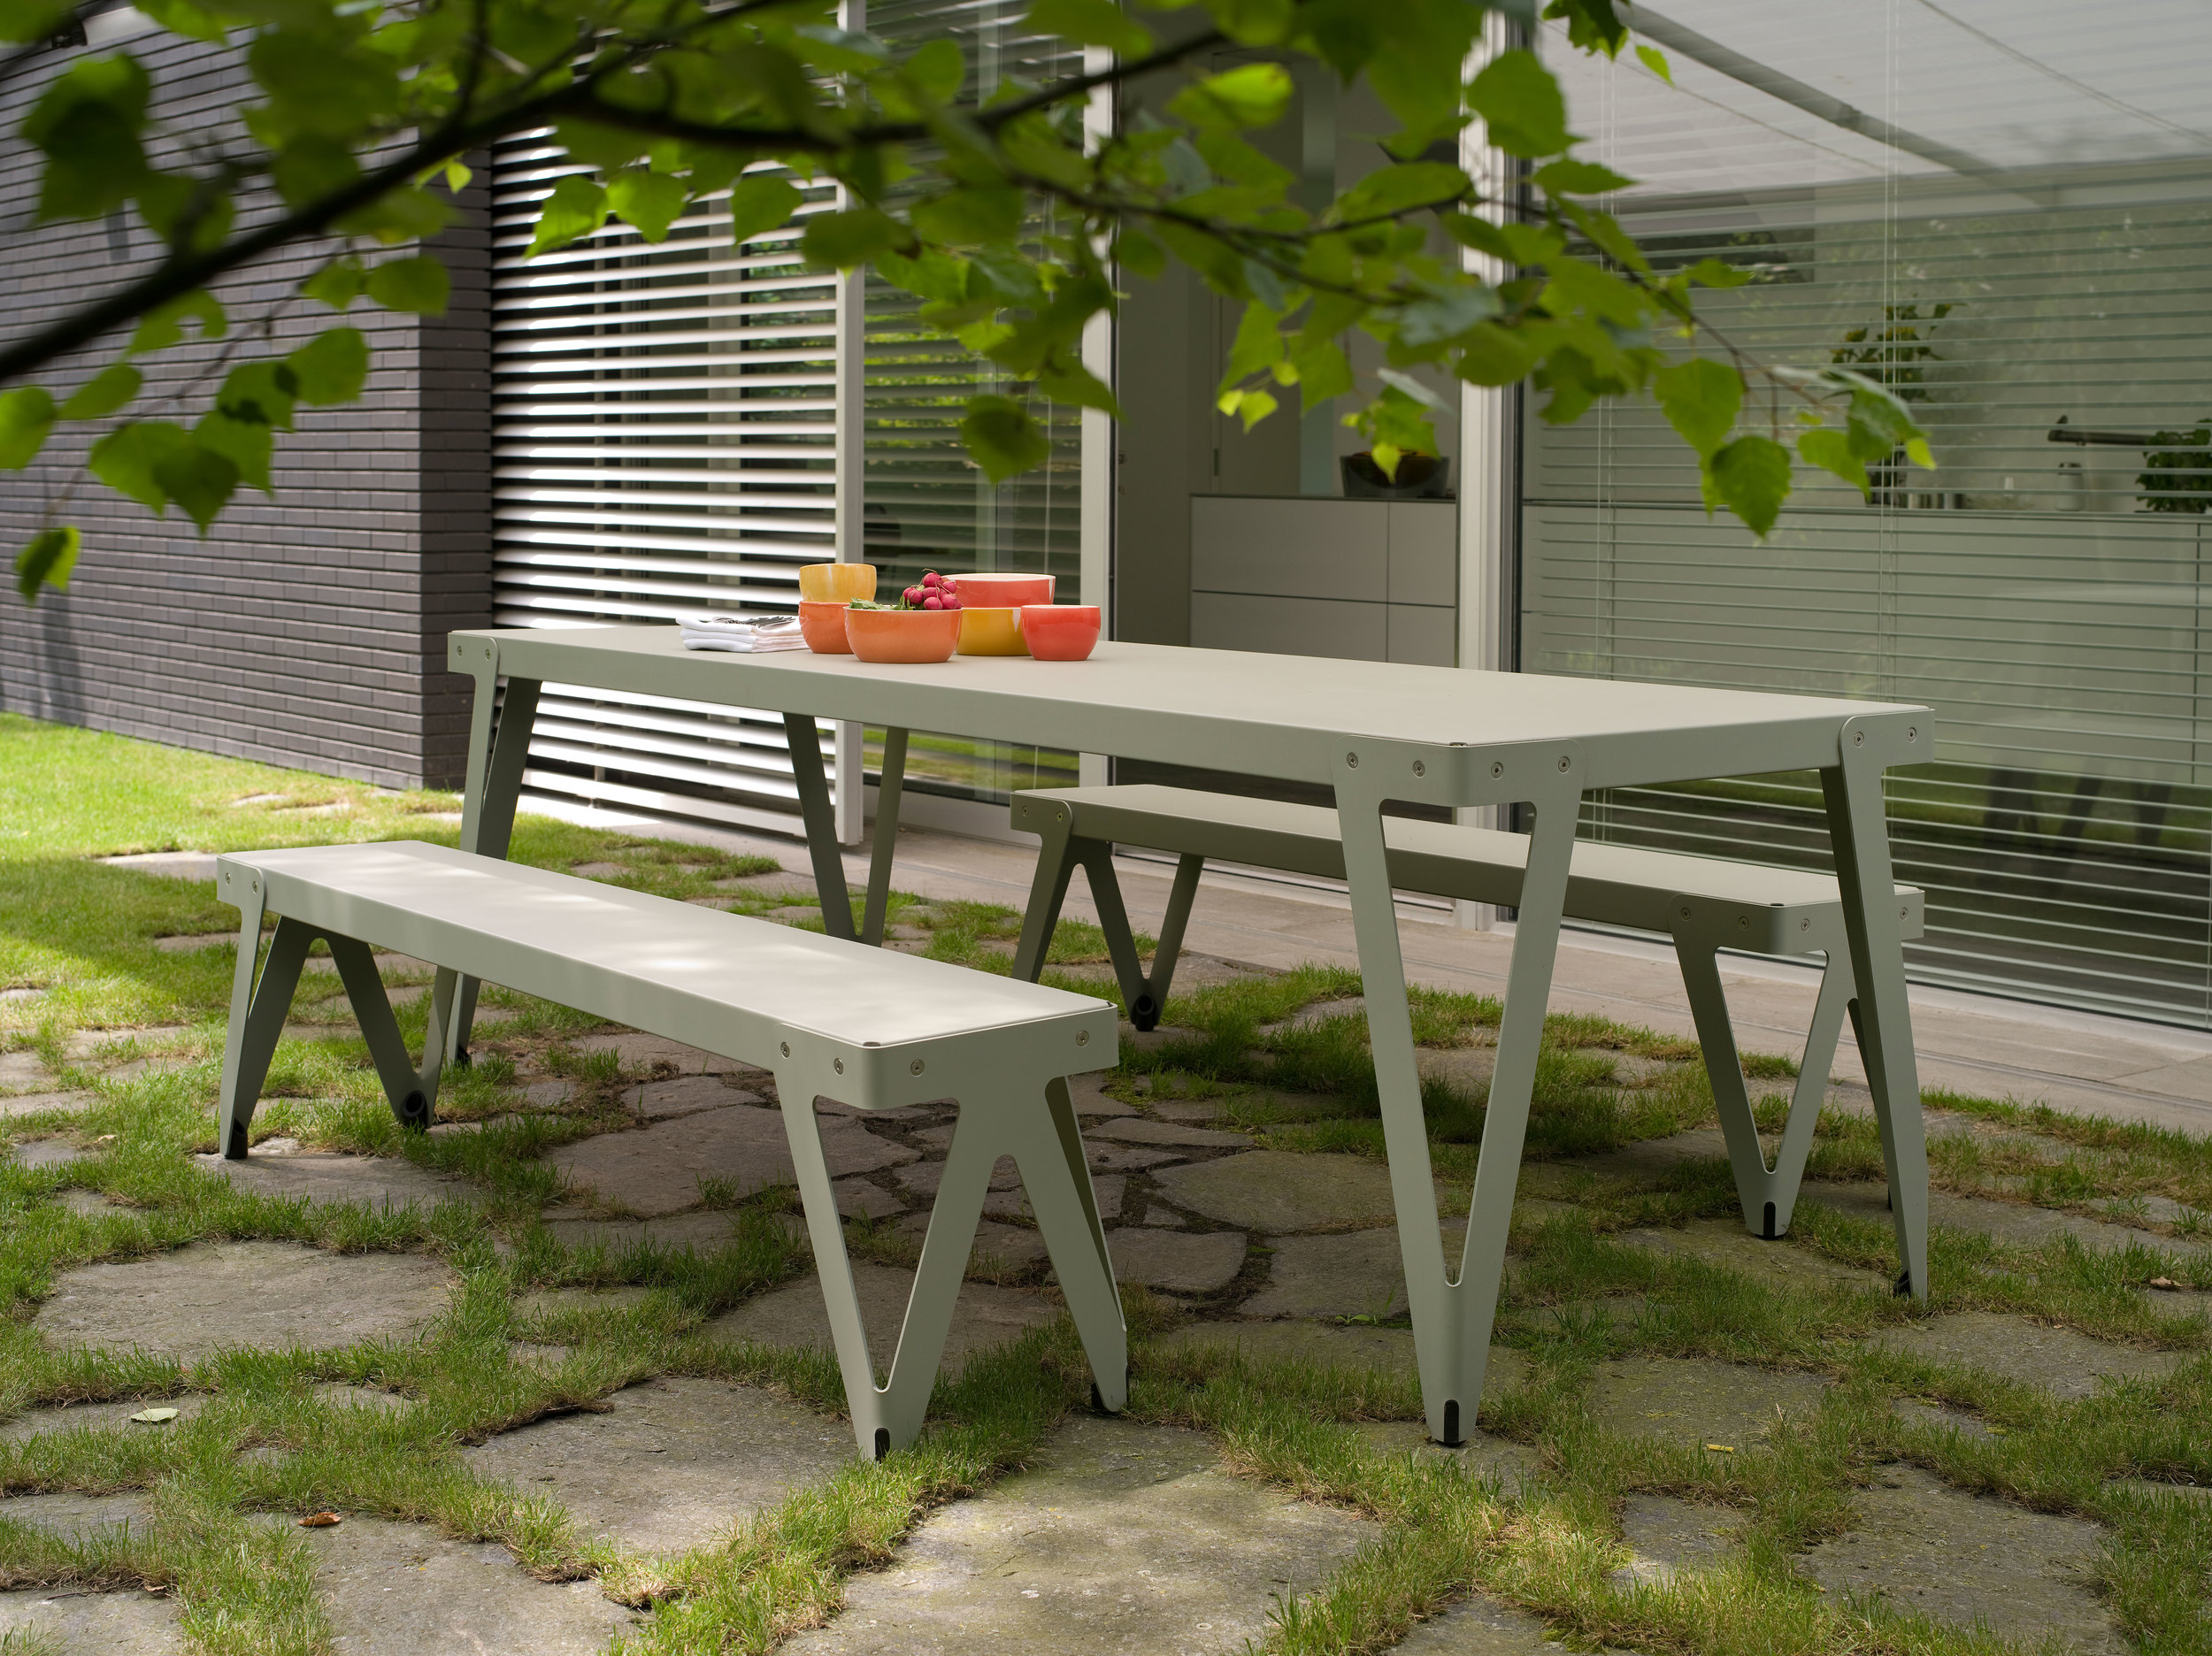 Lloyd Table 230x80+Bench 170 OUTDOOR_parallel (1).jpg